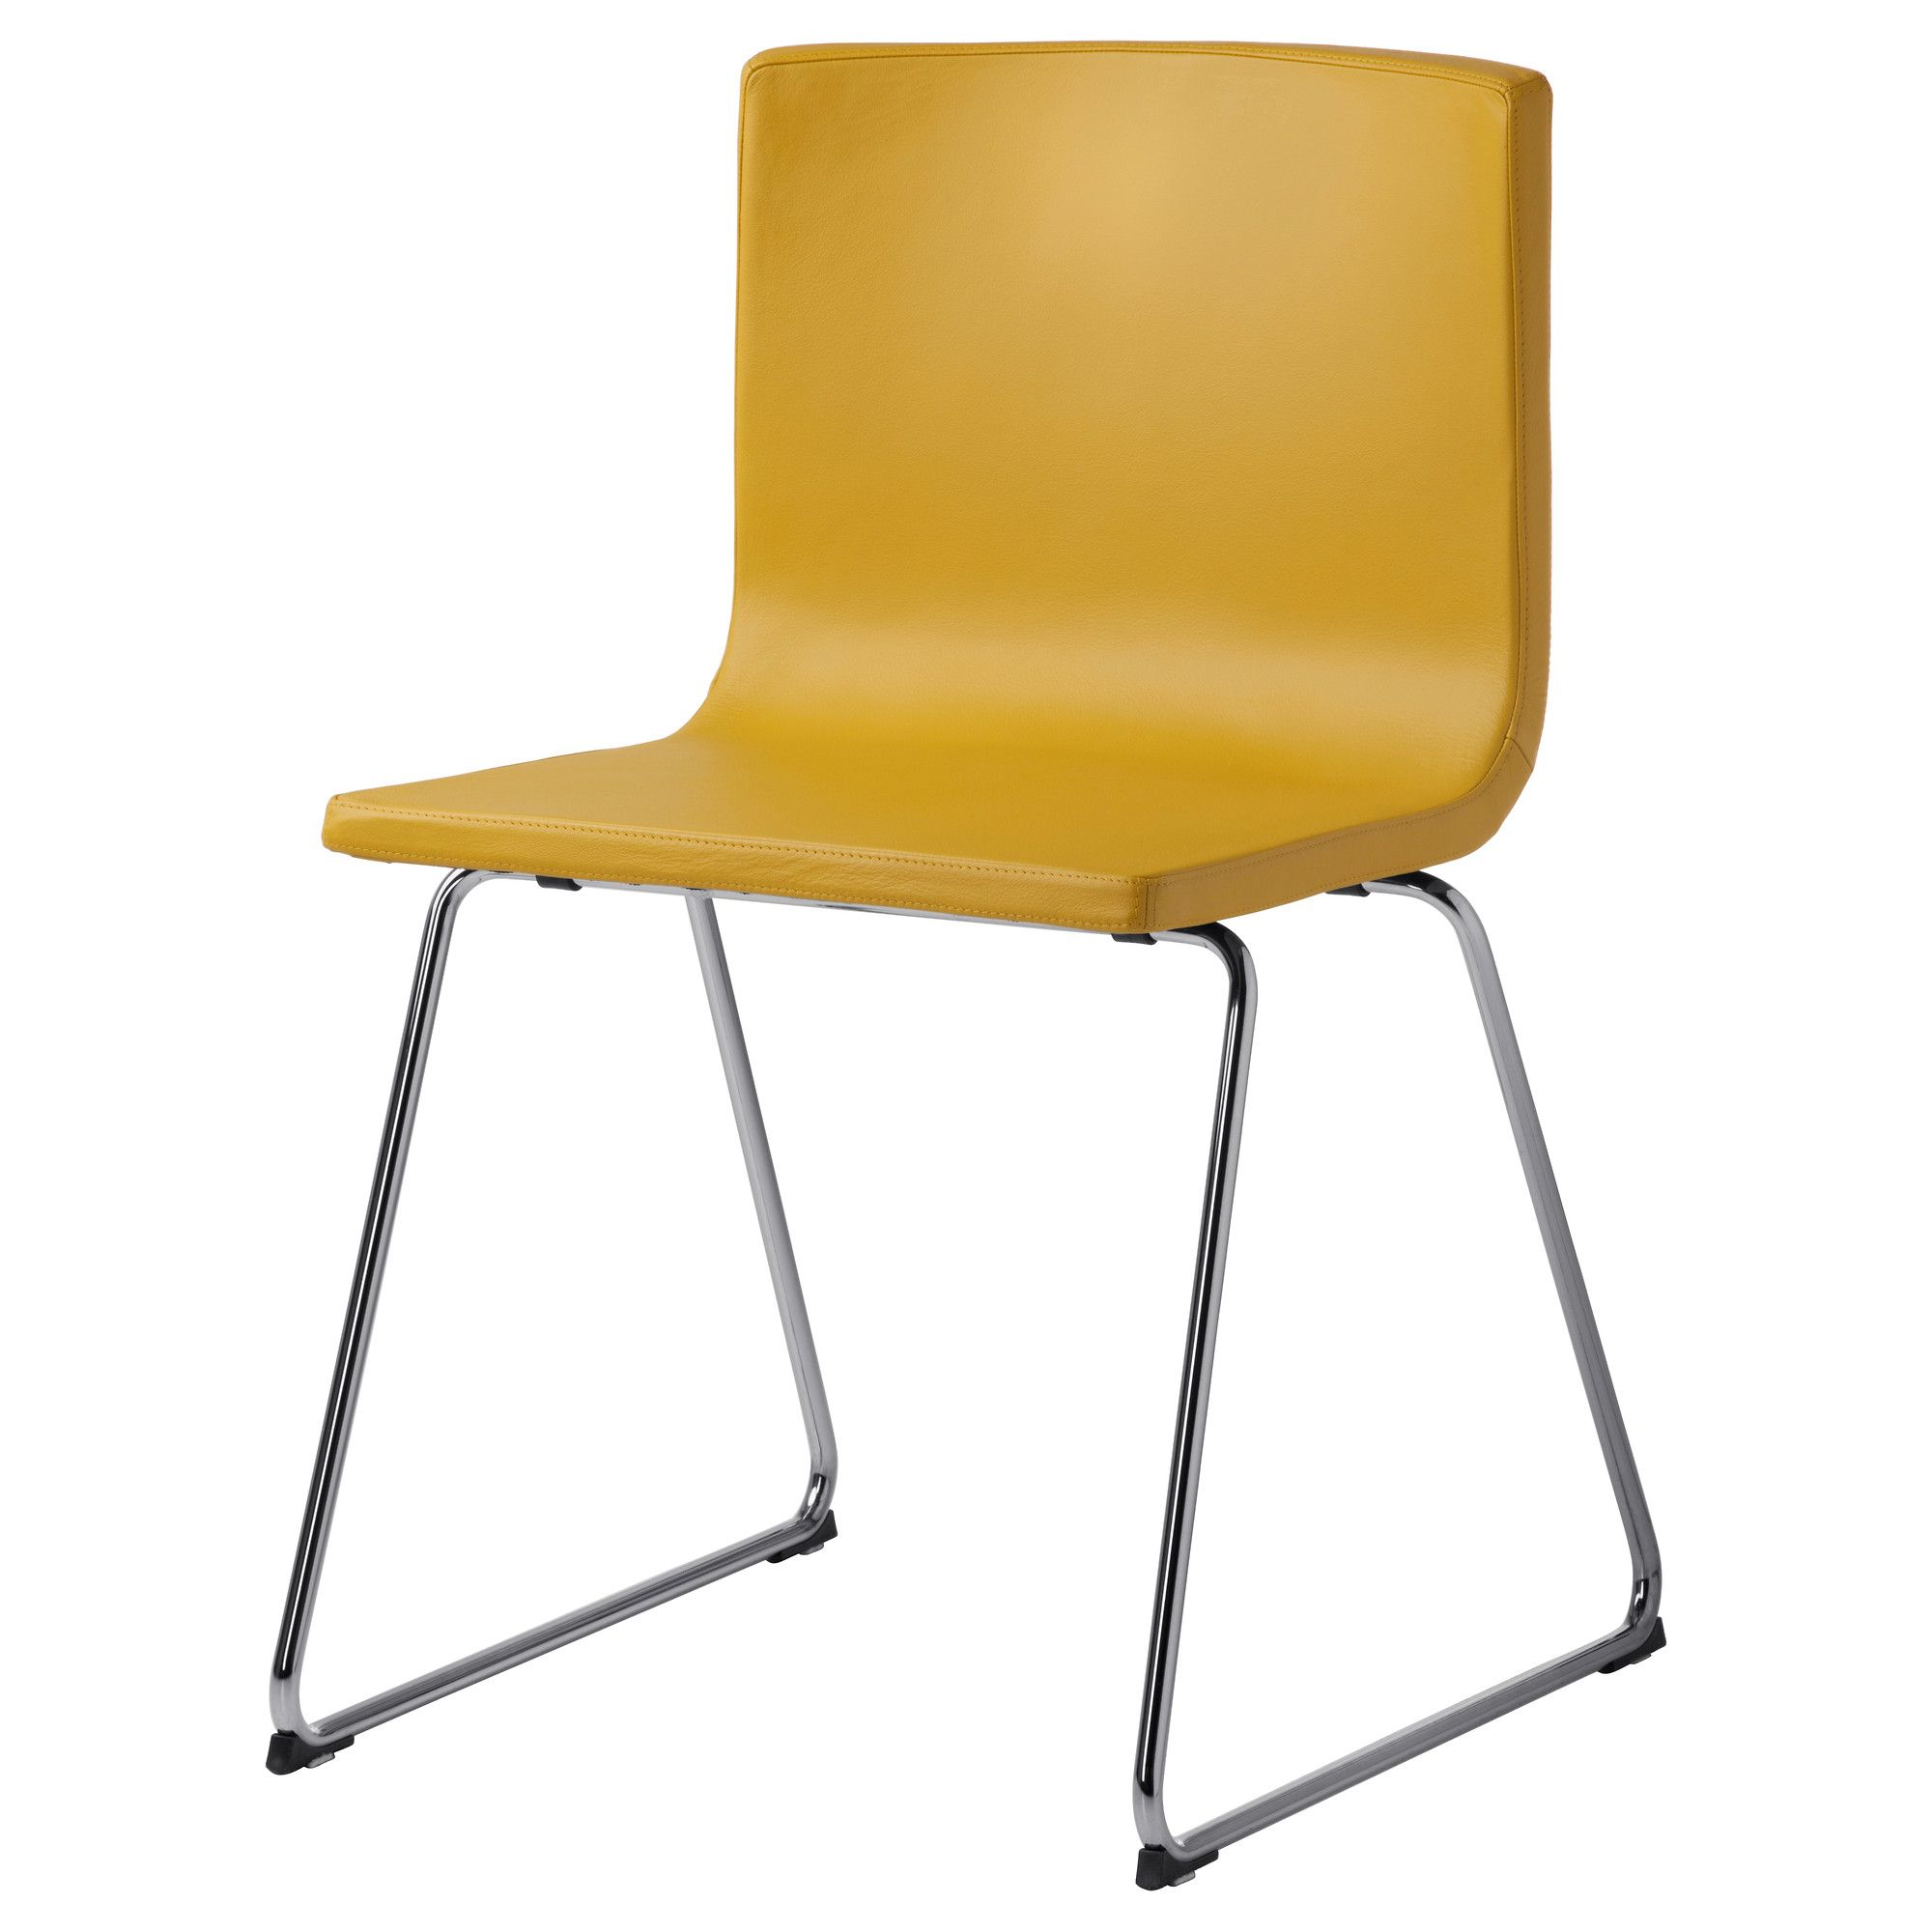 Shop For Furniture Home Accessories More Ikea Dining Ikea Dining Chair Ikea Leather Chair